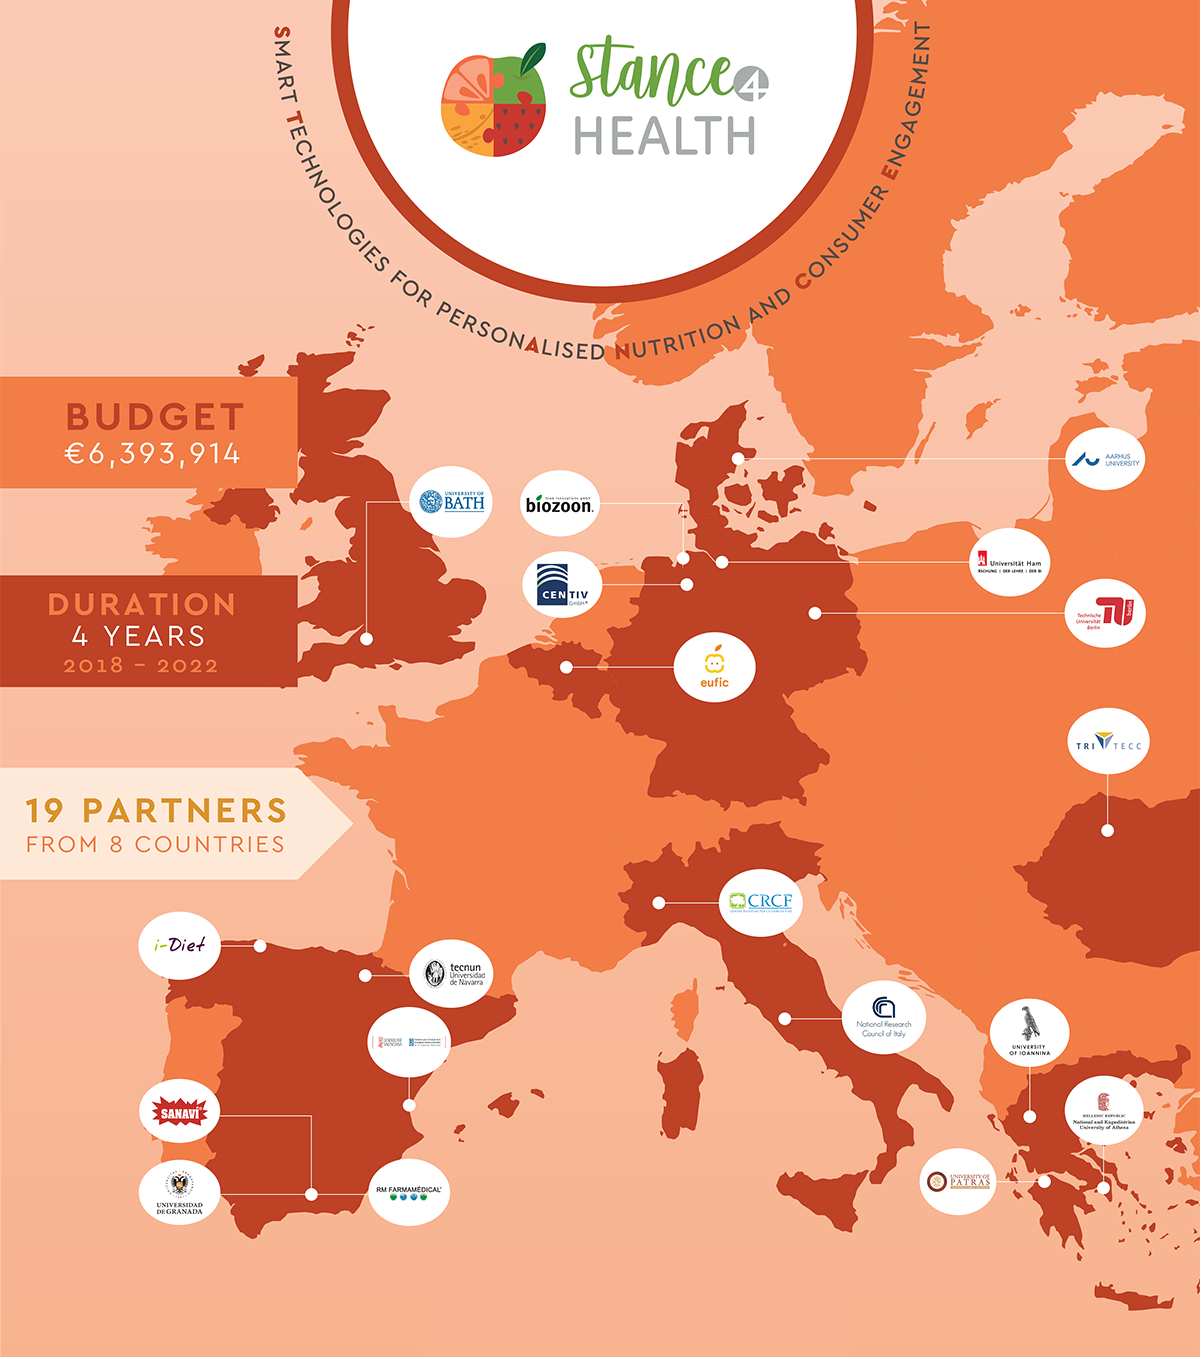 Stance4Health partner map